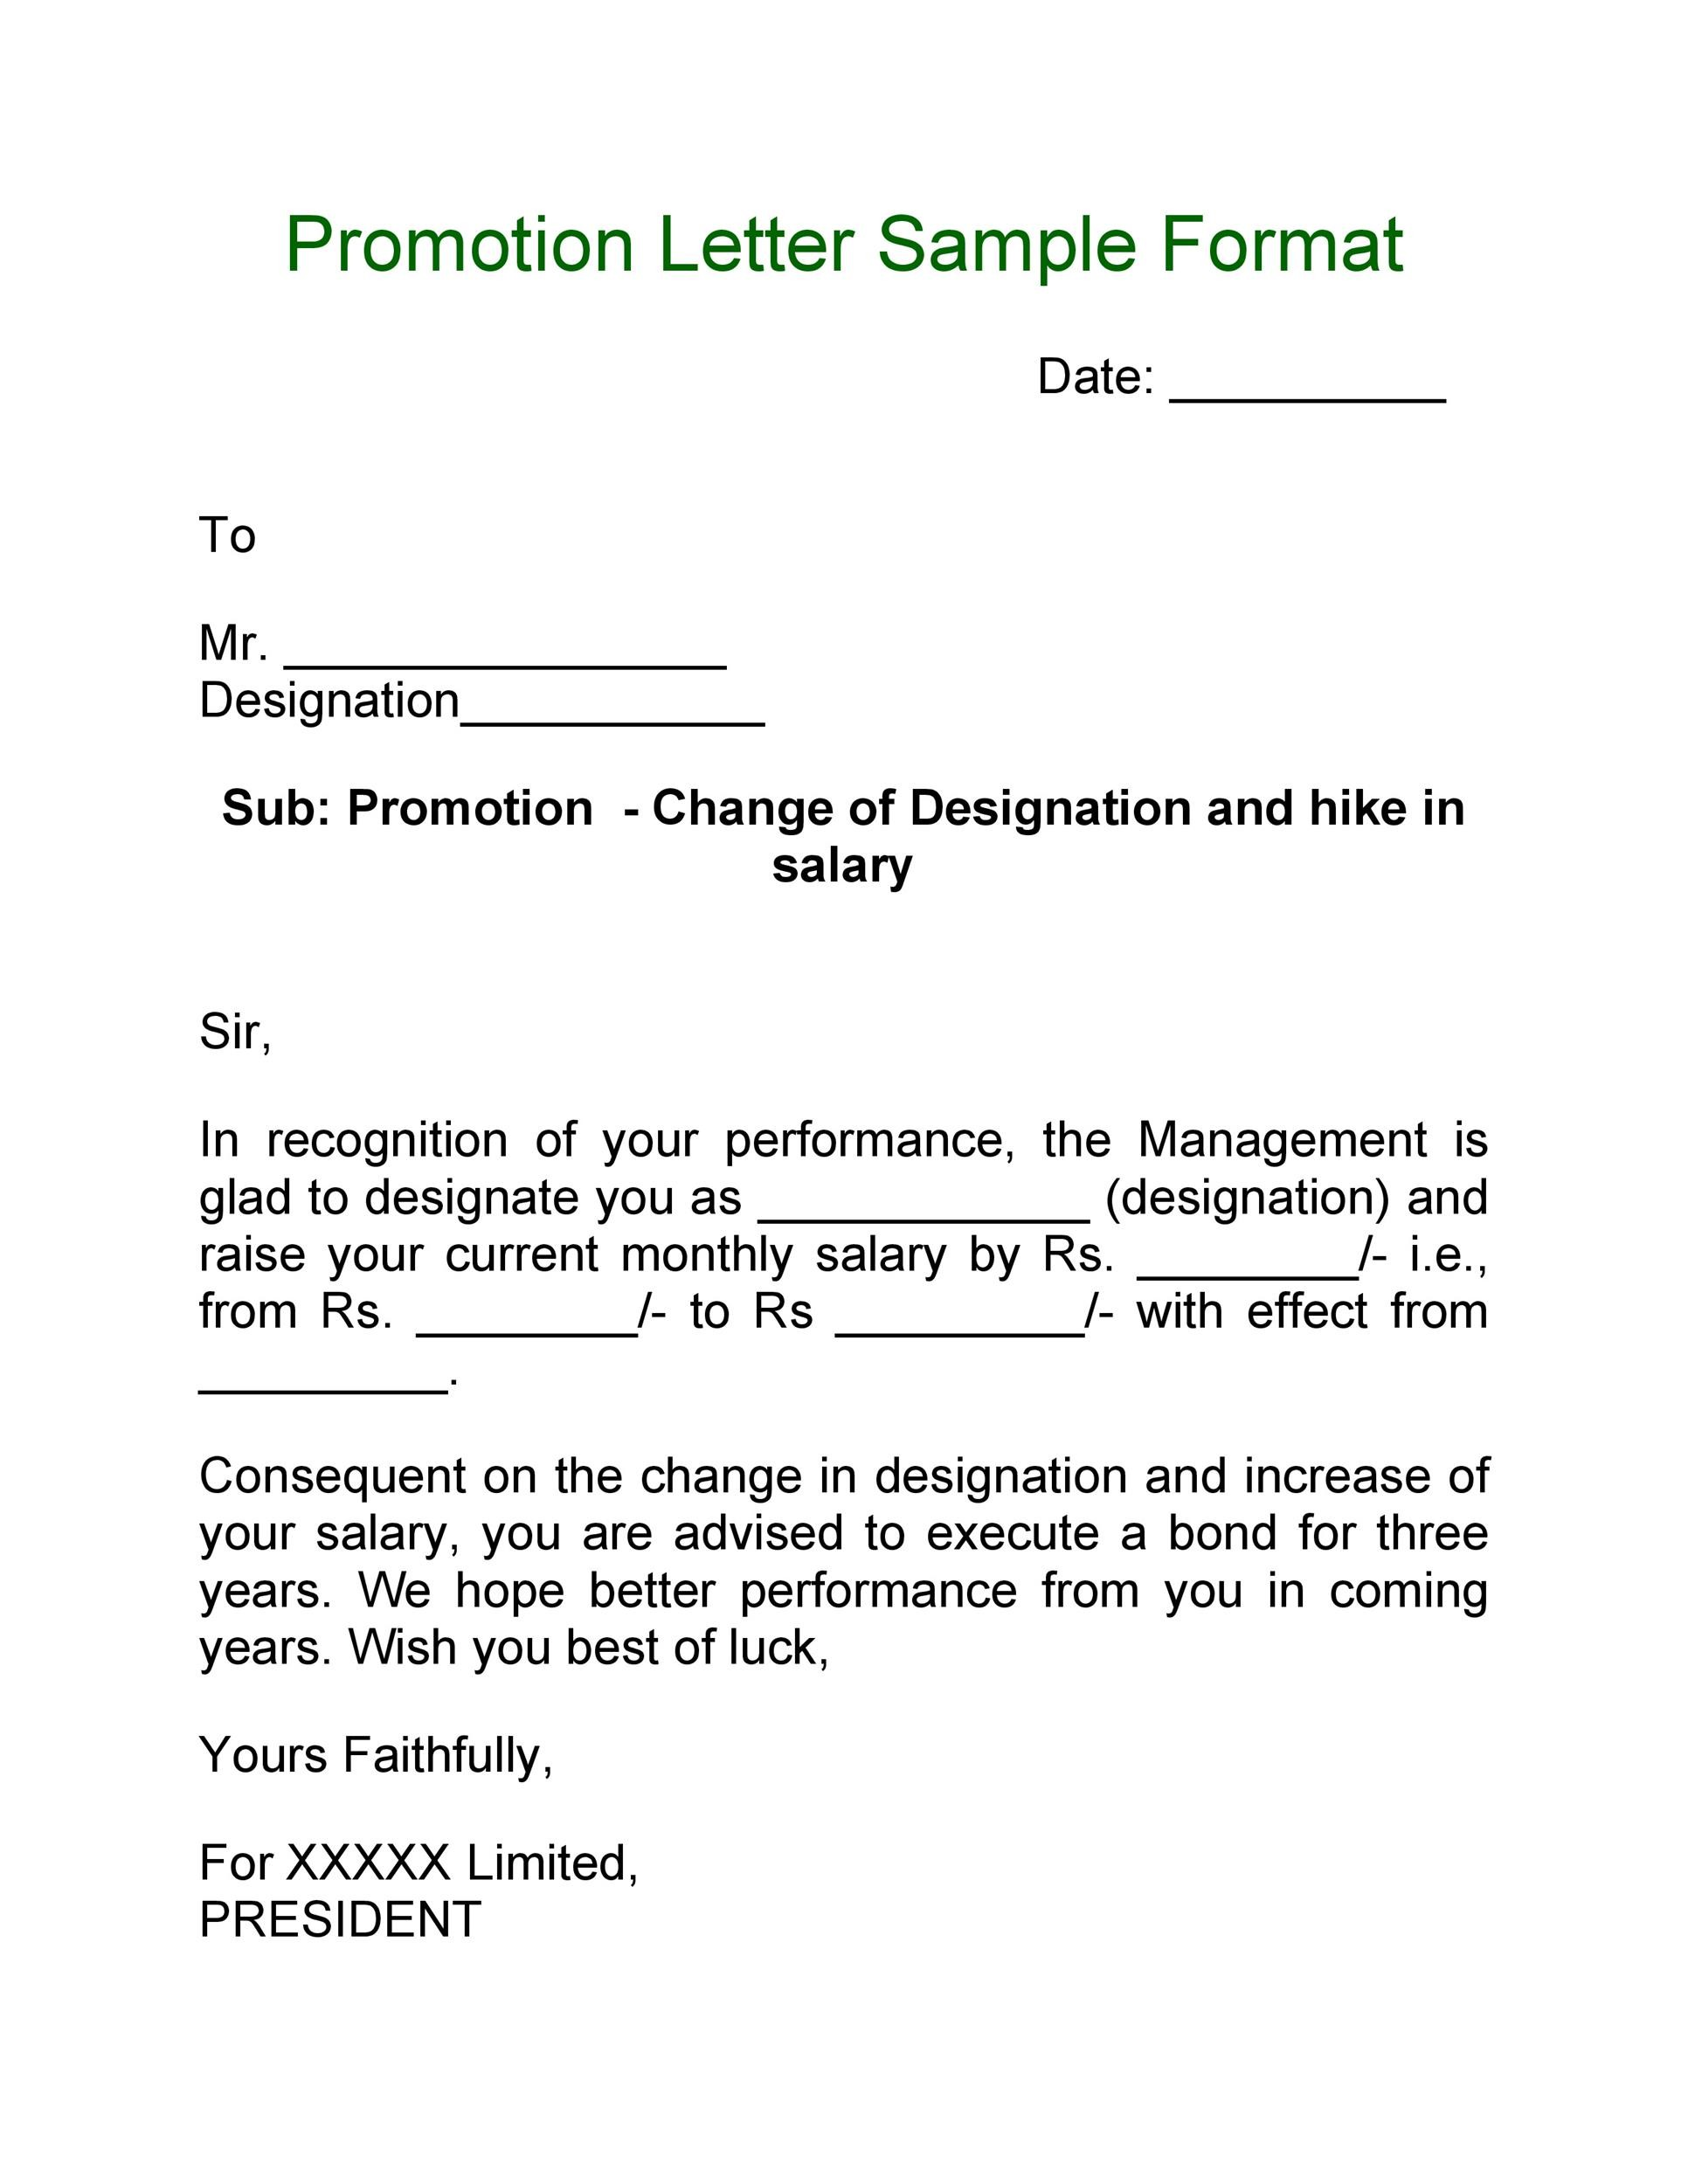 50 Job Promotion Letters (100 Free Templates) ᐅ Template Lab